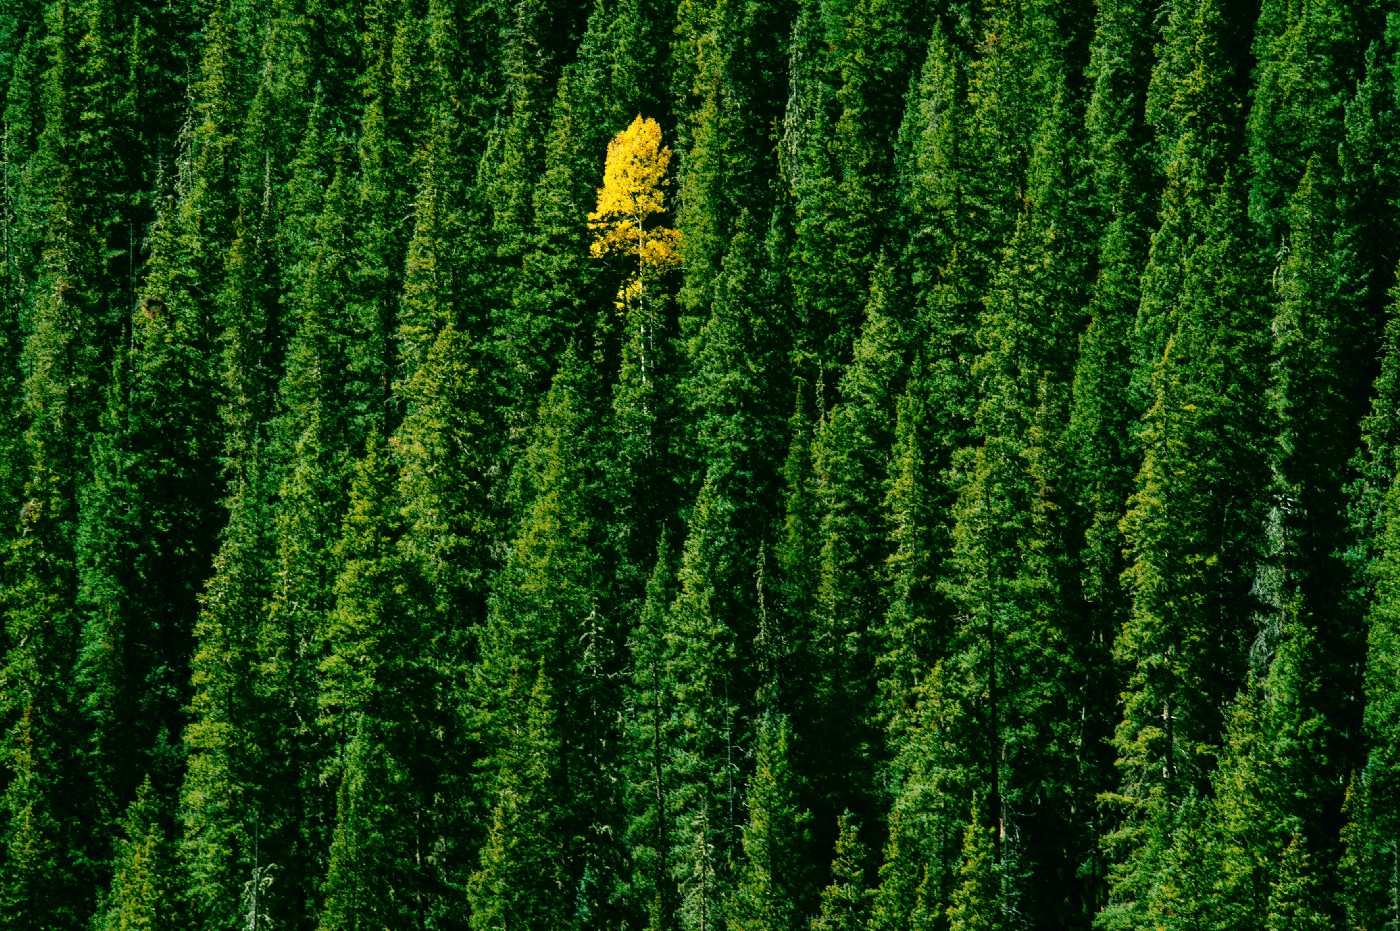 Single yellow tree in a green forest